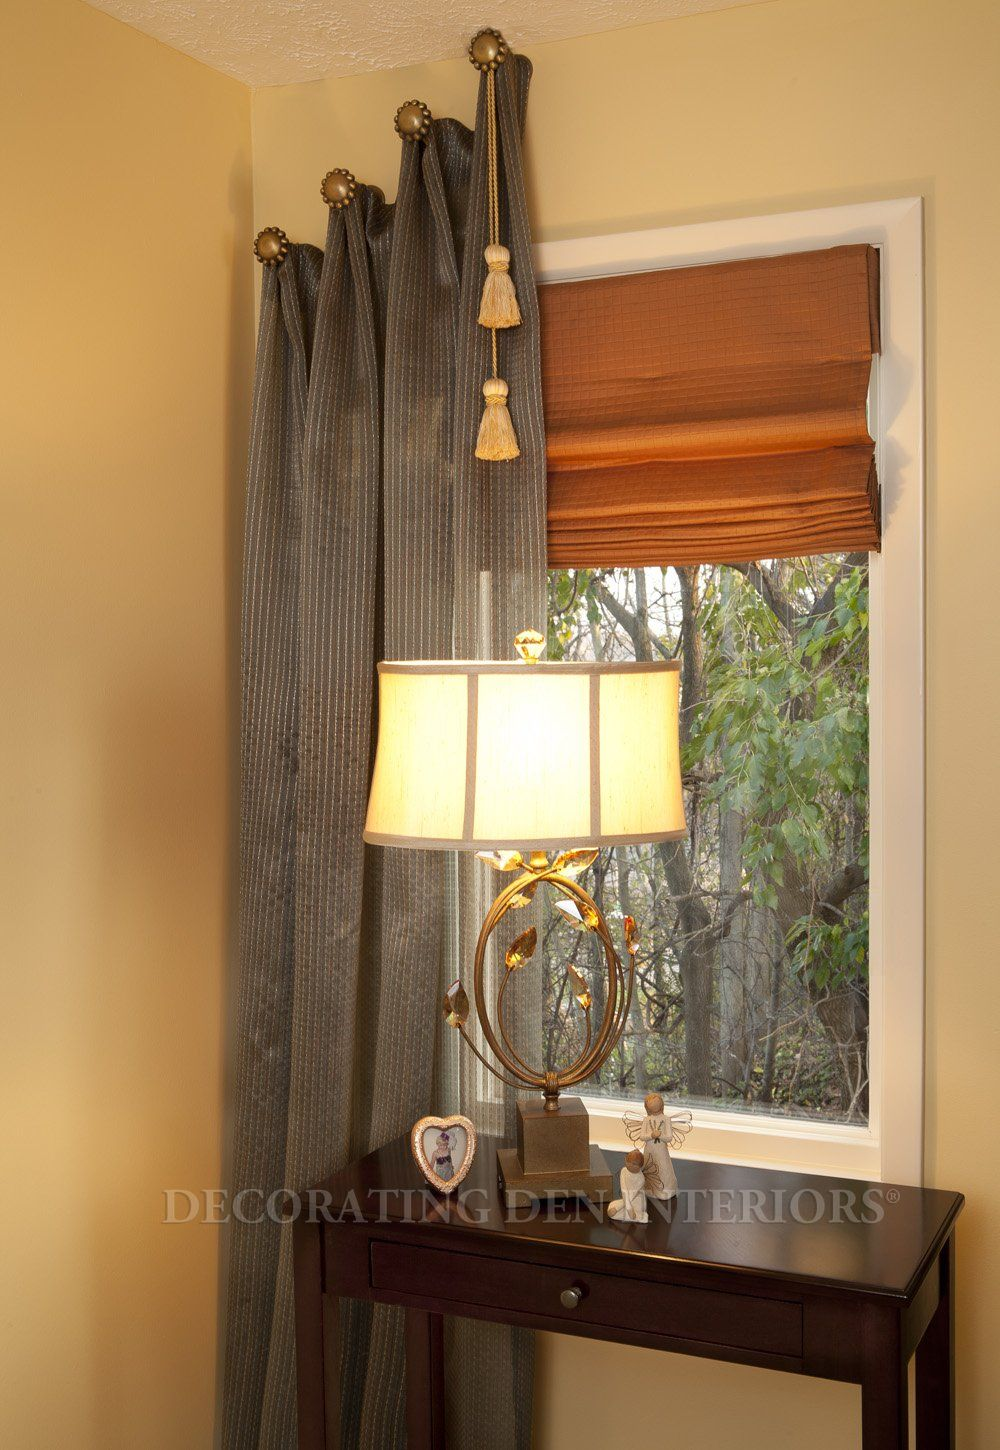 Team Curtains Teamcurtainscom: Window Treatments Designs By Decorating Den Interiors